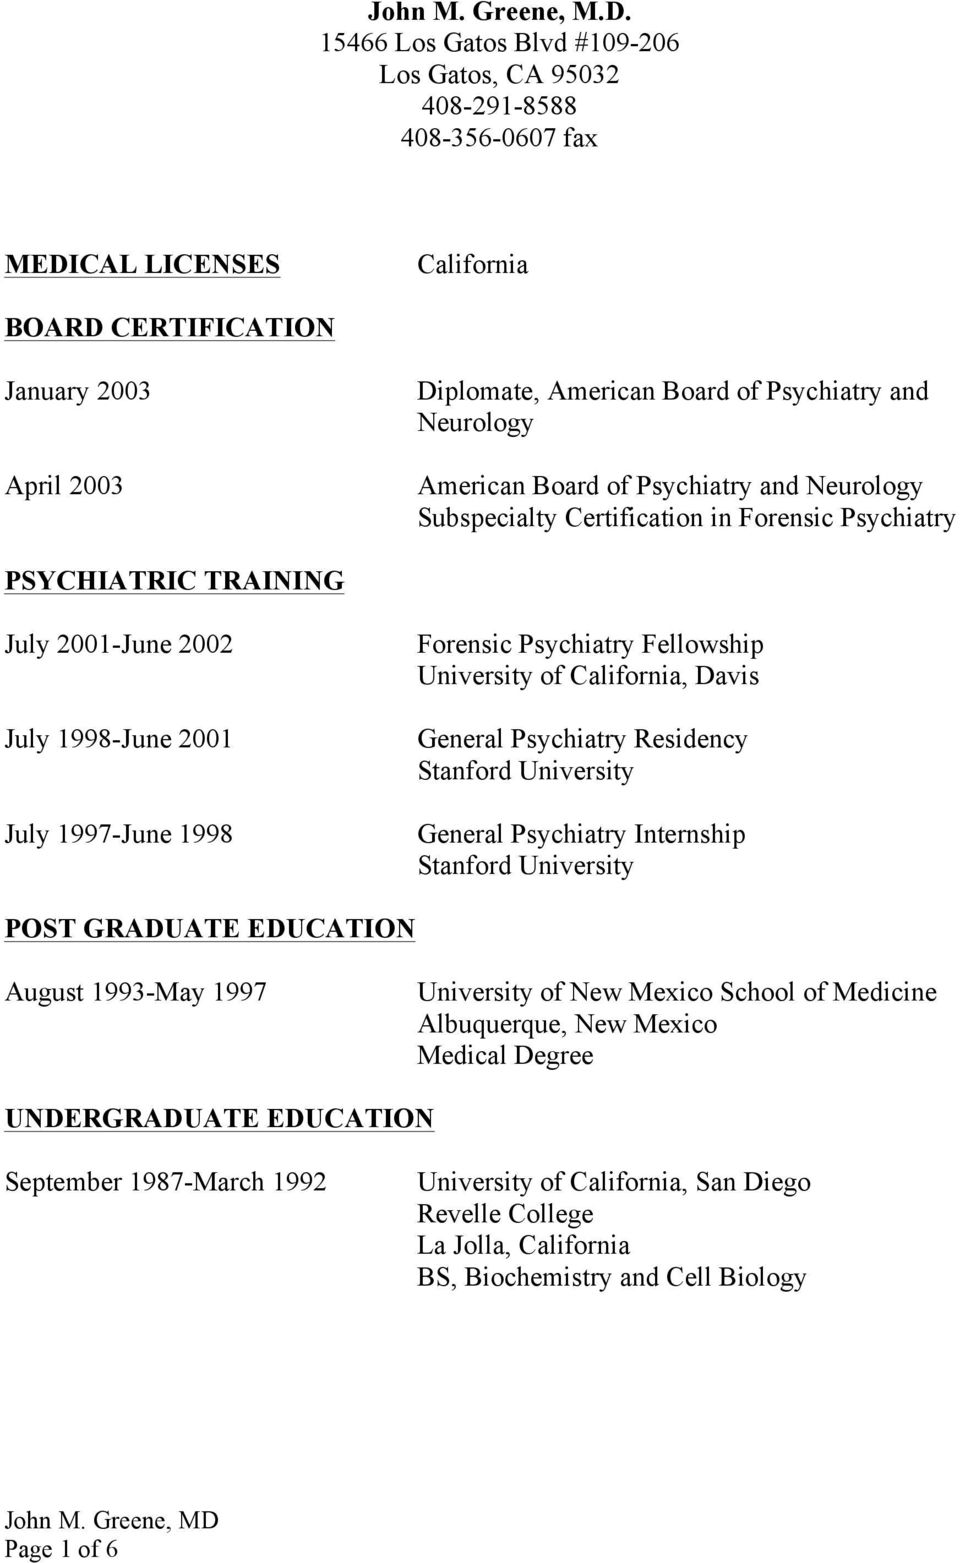 Neurology American Board of Psychiatry and Neurology Subspecialty Certification in Forensic Psychiatry PSYCHIATRIC TRAINING July 2001-June 2002 July 1998-June 2001 July 1997-June 1998 Forensic